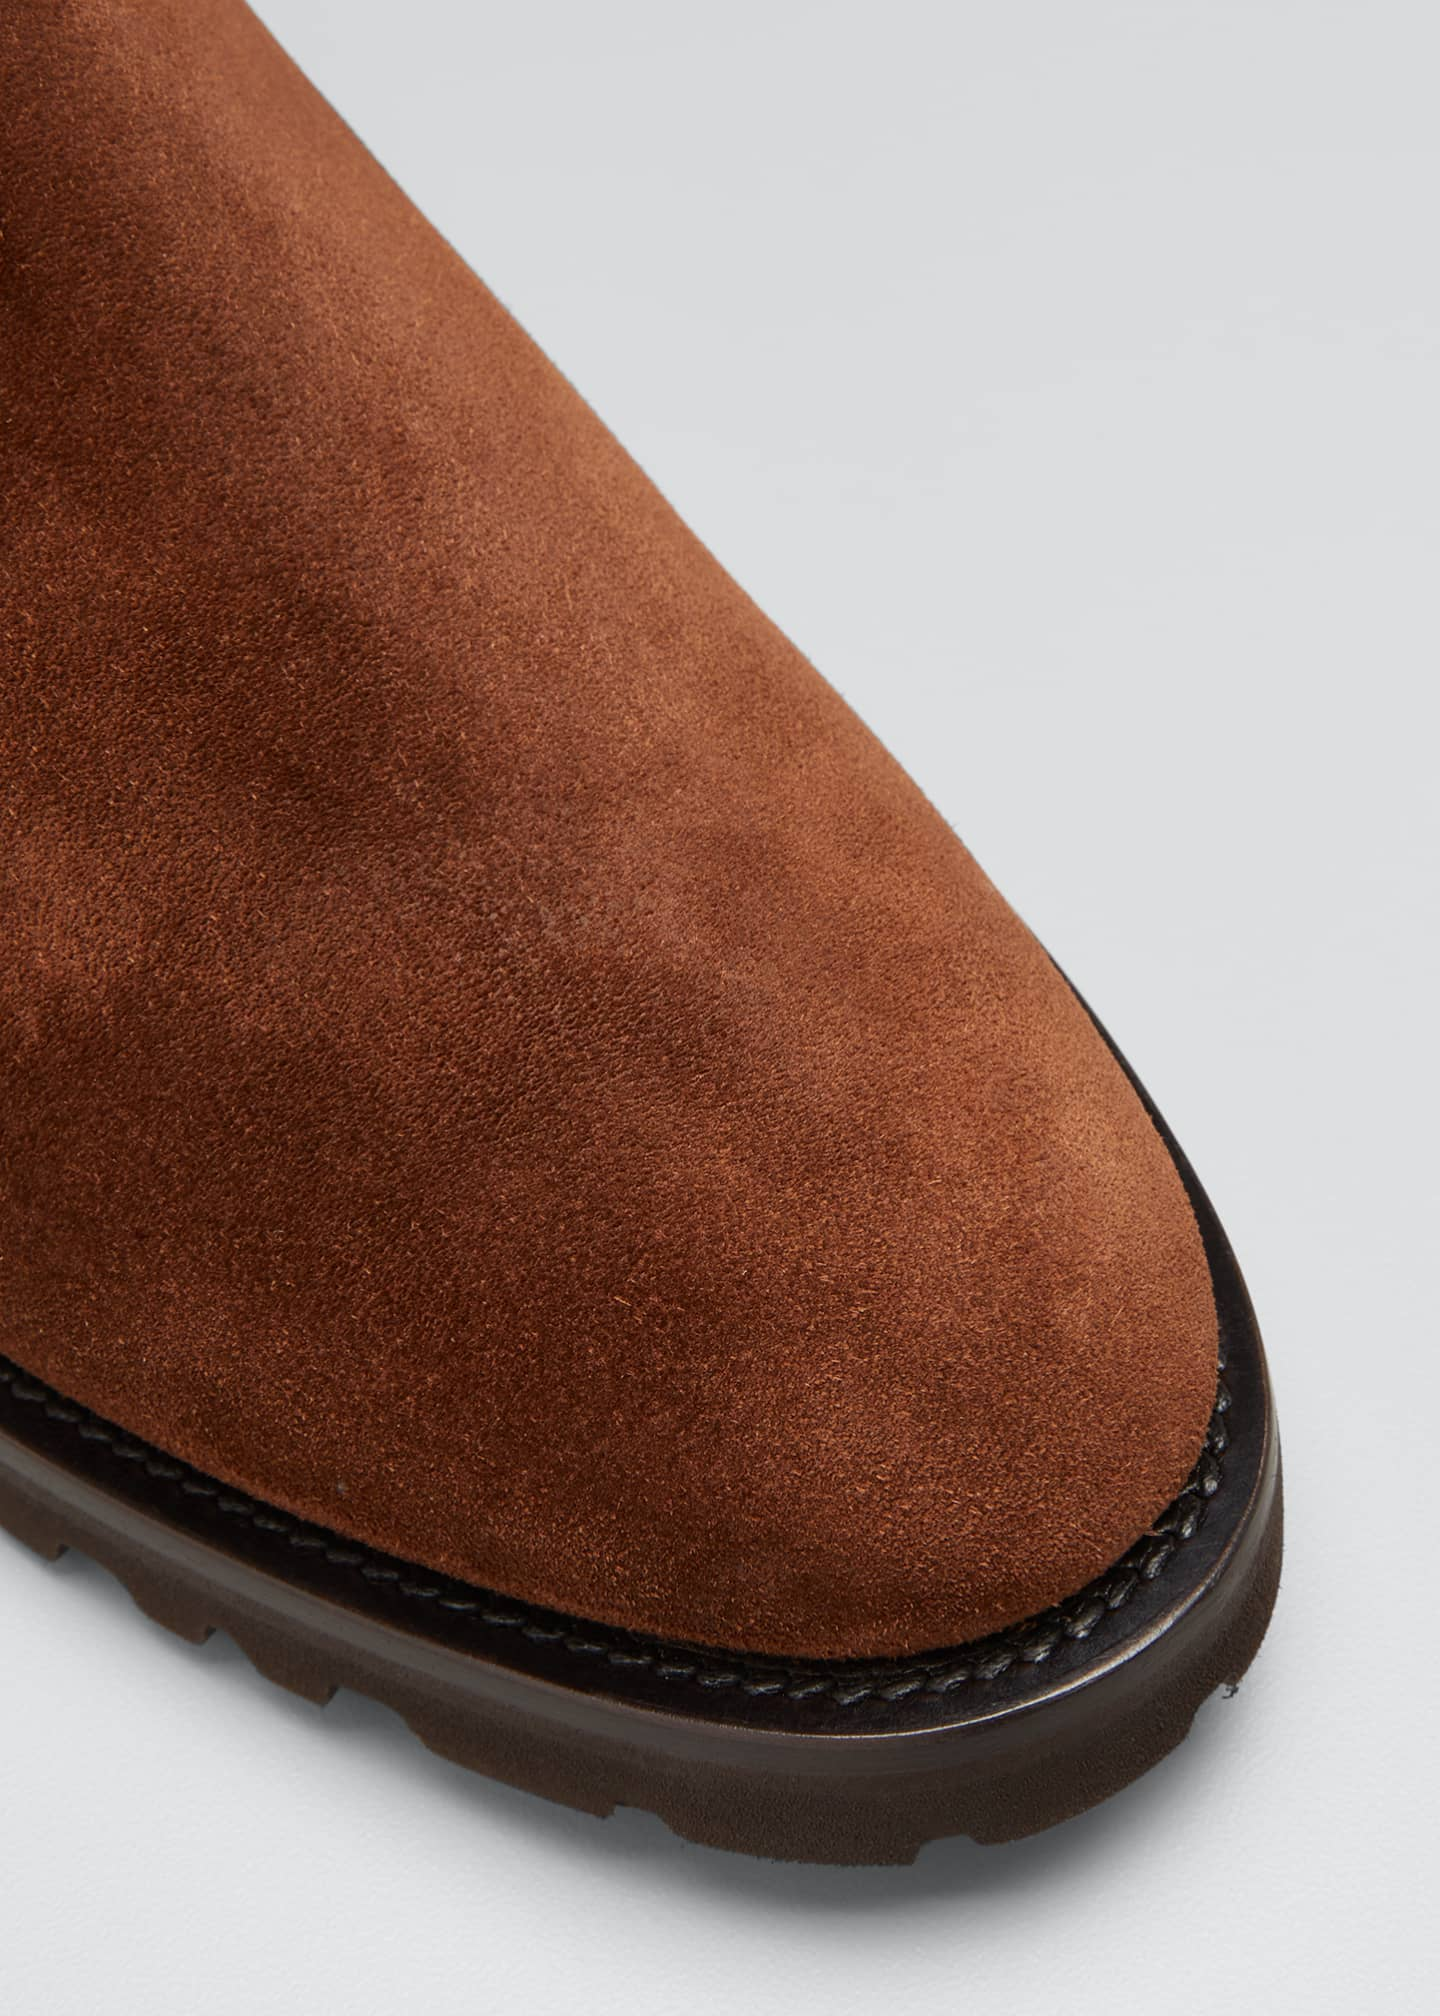 Image 3 of 3: Men's Suede Chelsea Boots